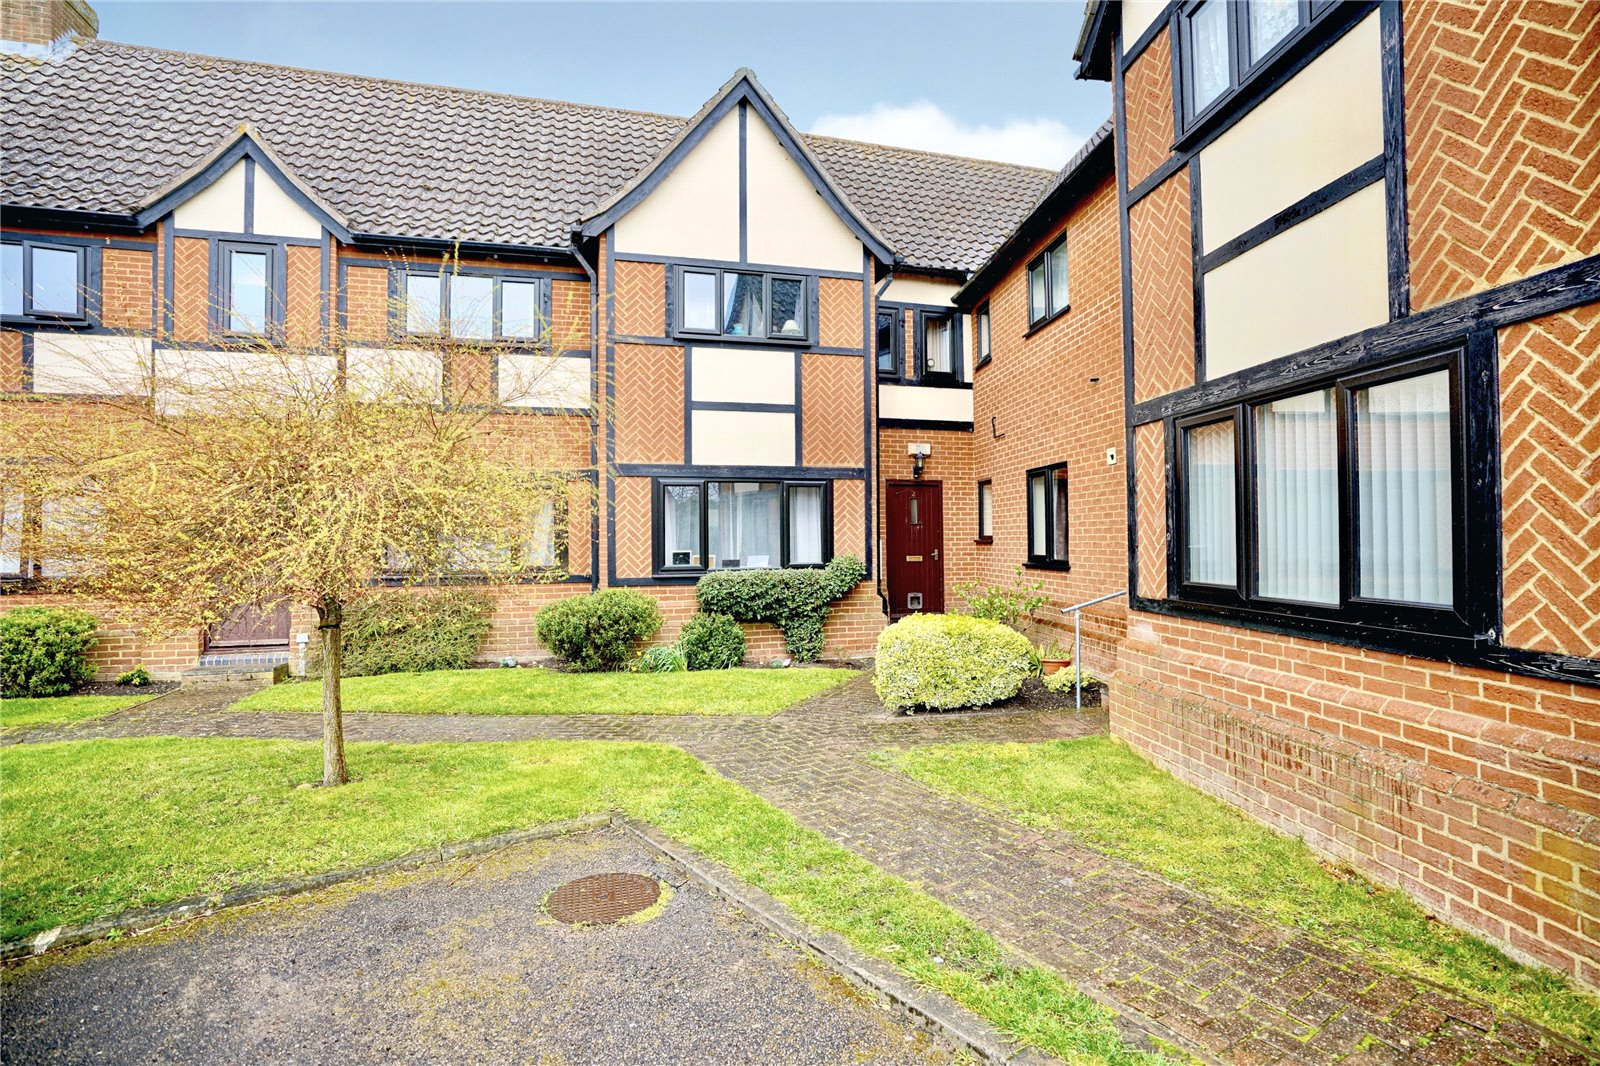 2 bed apartment for sale in Earith, PE28 3PP - Property Image 1